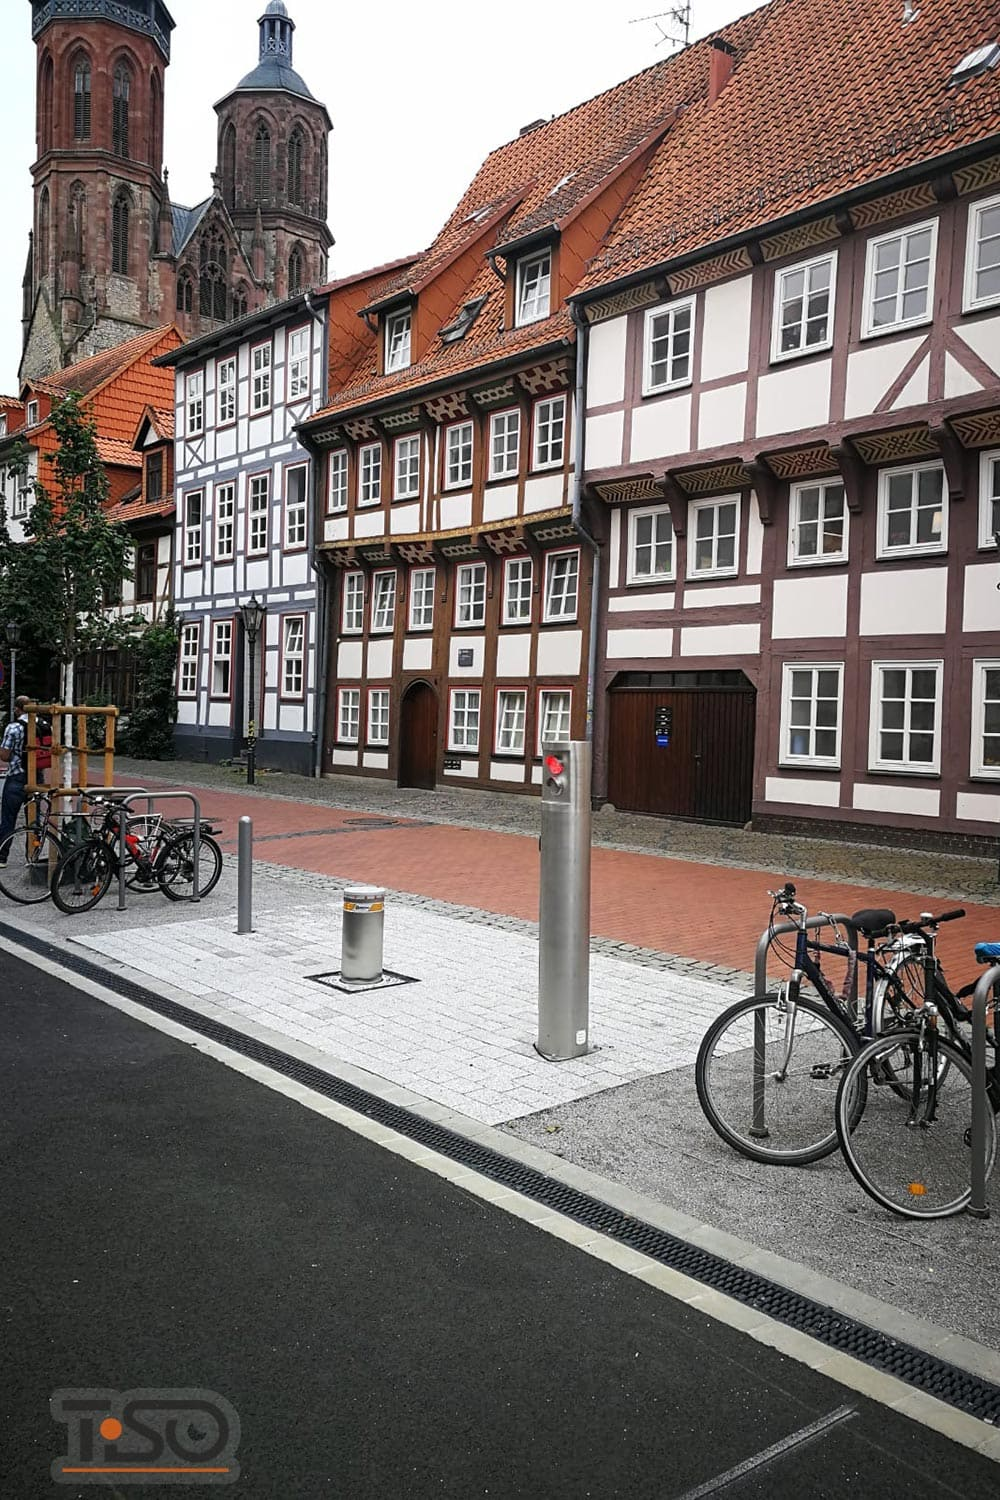 Traffic column, Erfurt